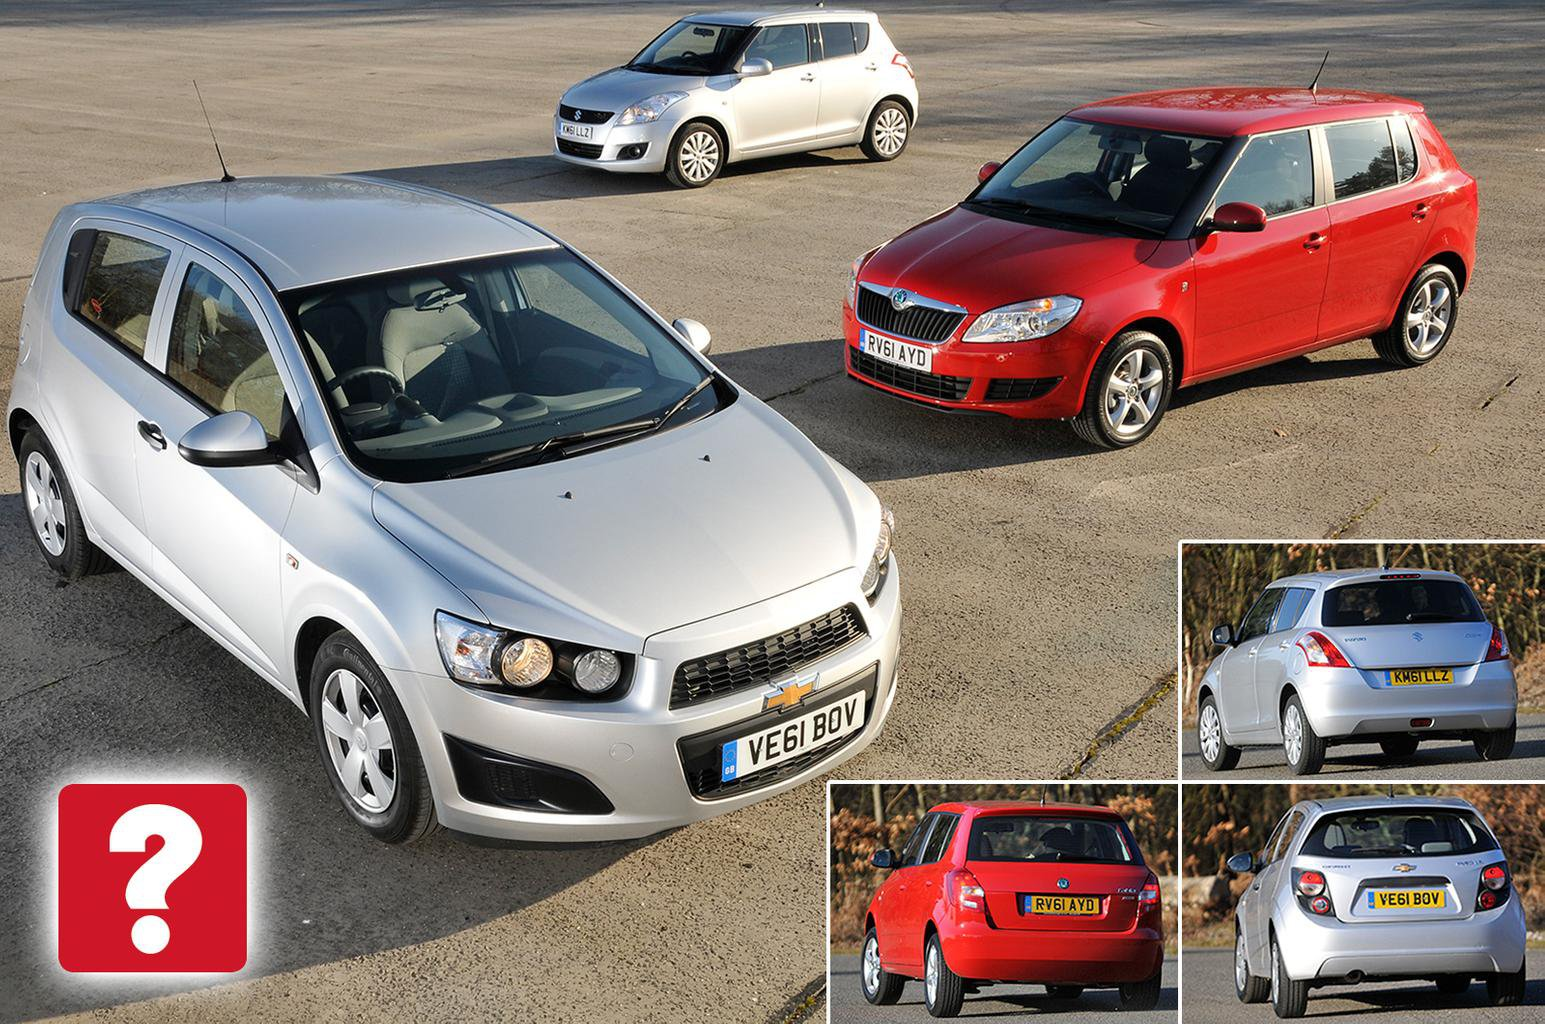 Used Skoda Fabia vs Suzuki Swift vs Chevrolet Aveo